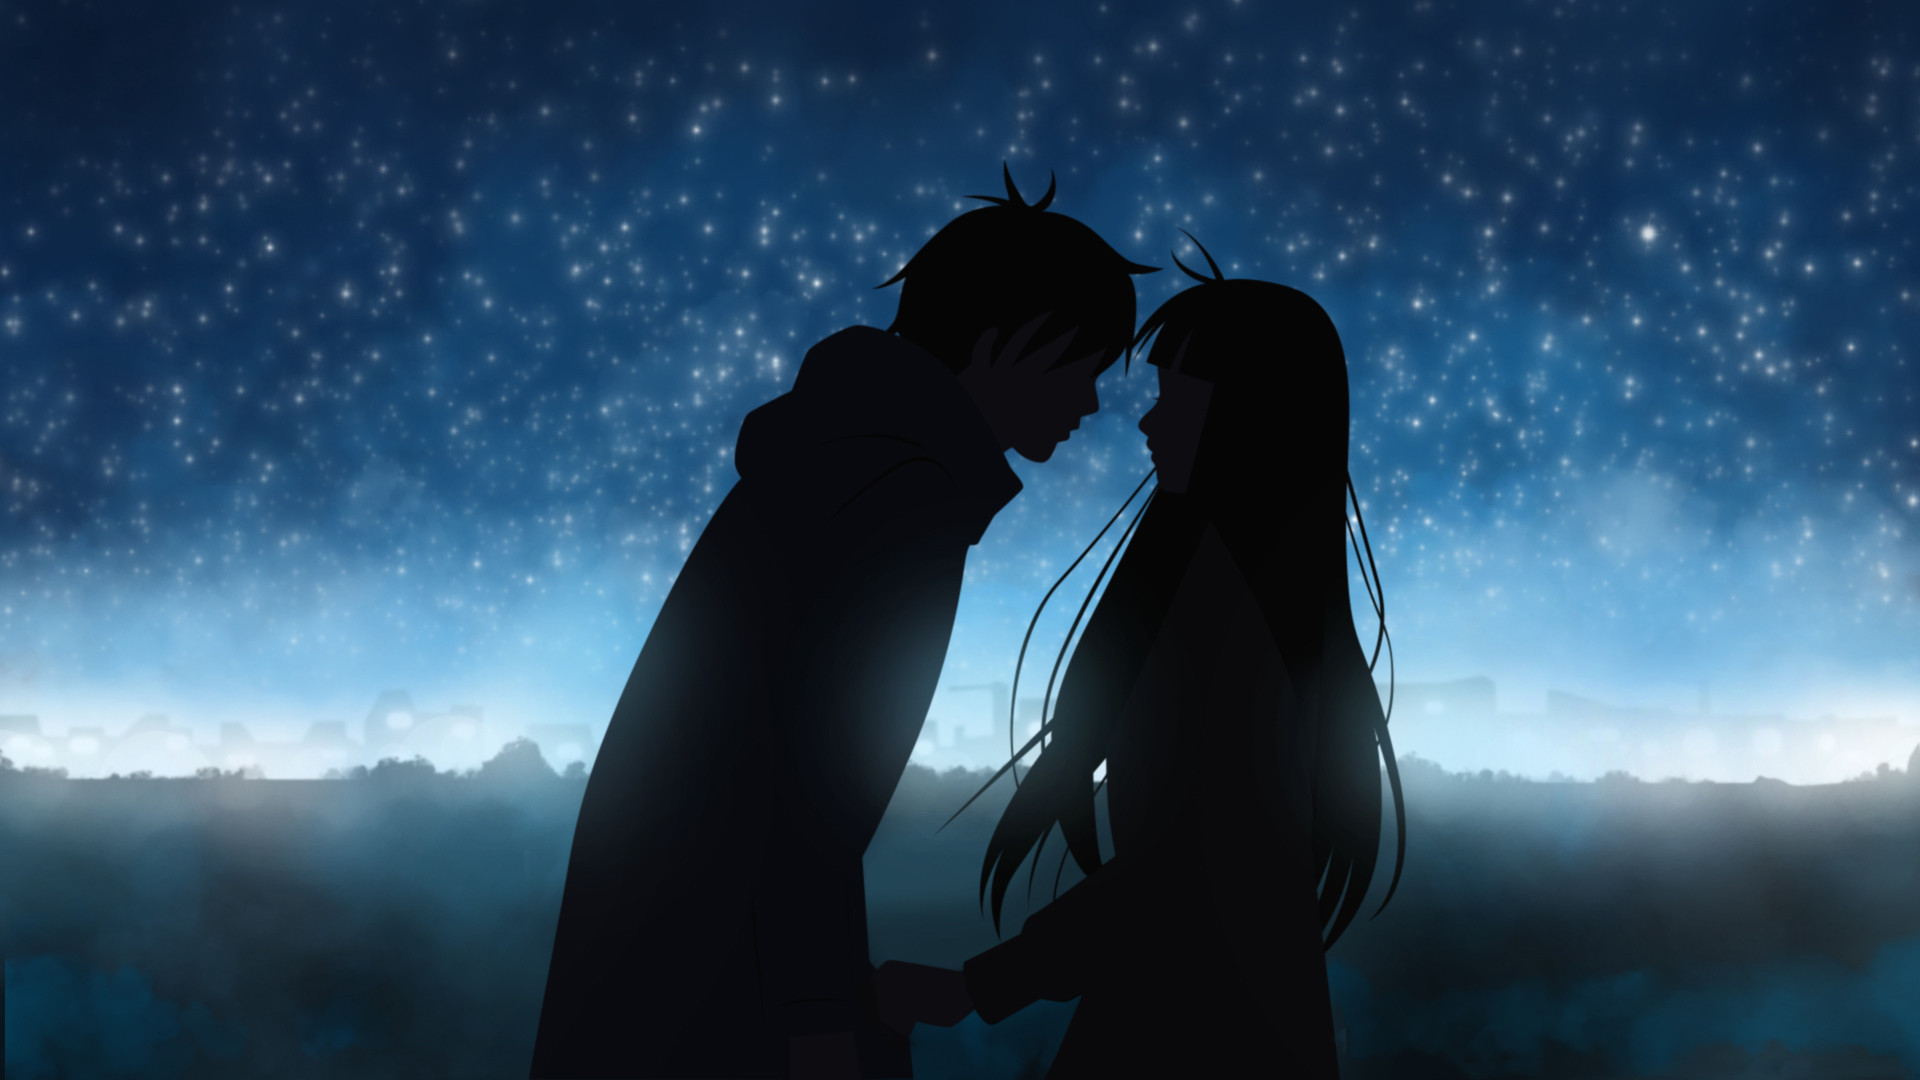 Romantic Anime Wallpapers 65 Pictures